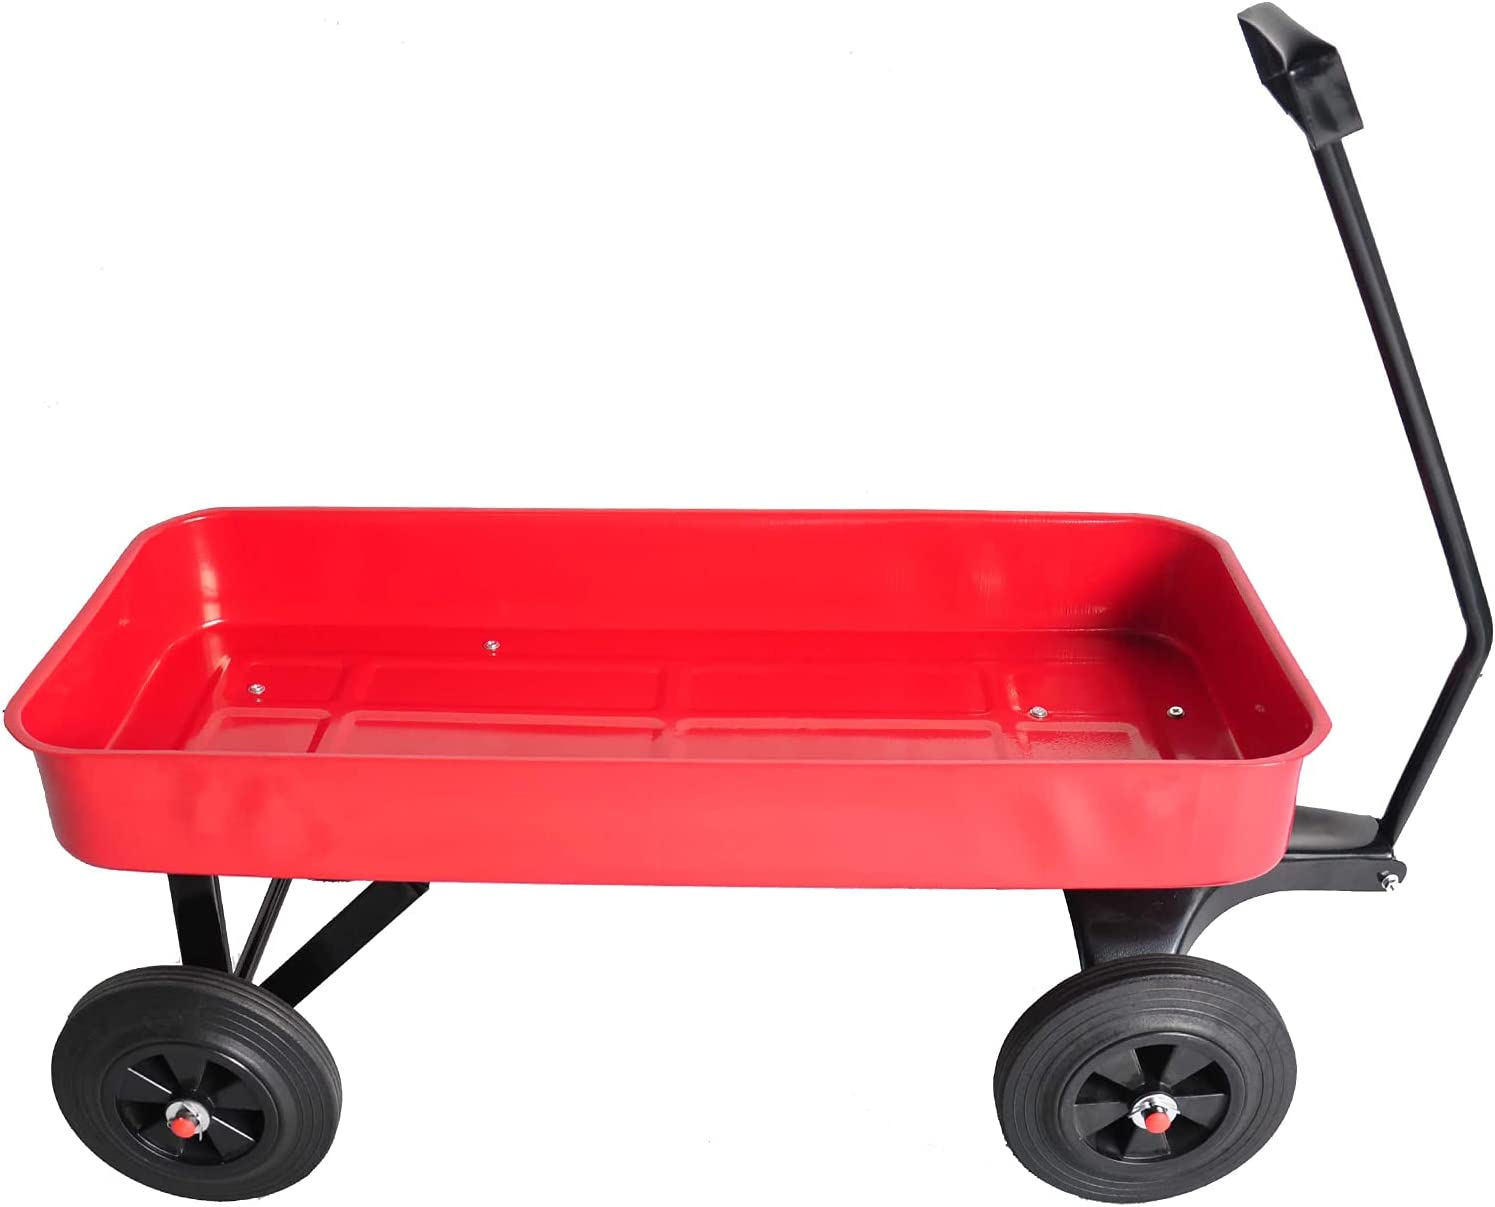 Garden Cart with Solid Wheels Wagon Utility Max 70% OFF 2 Save money Outdoor